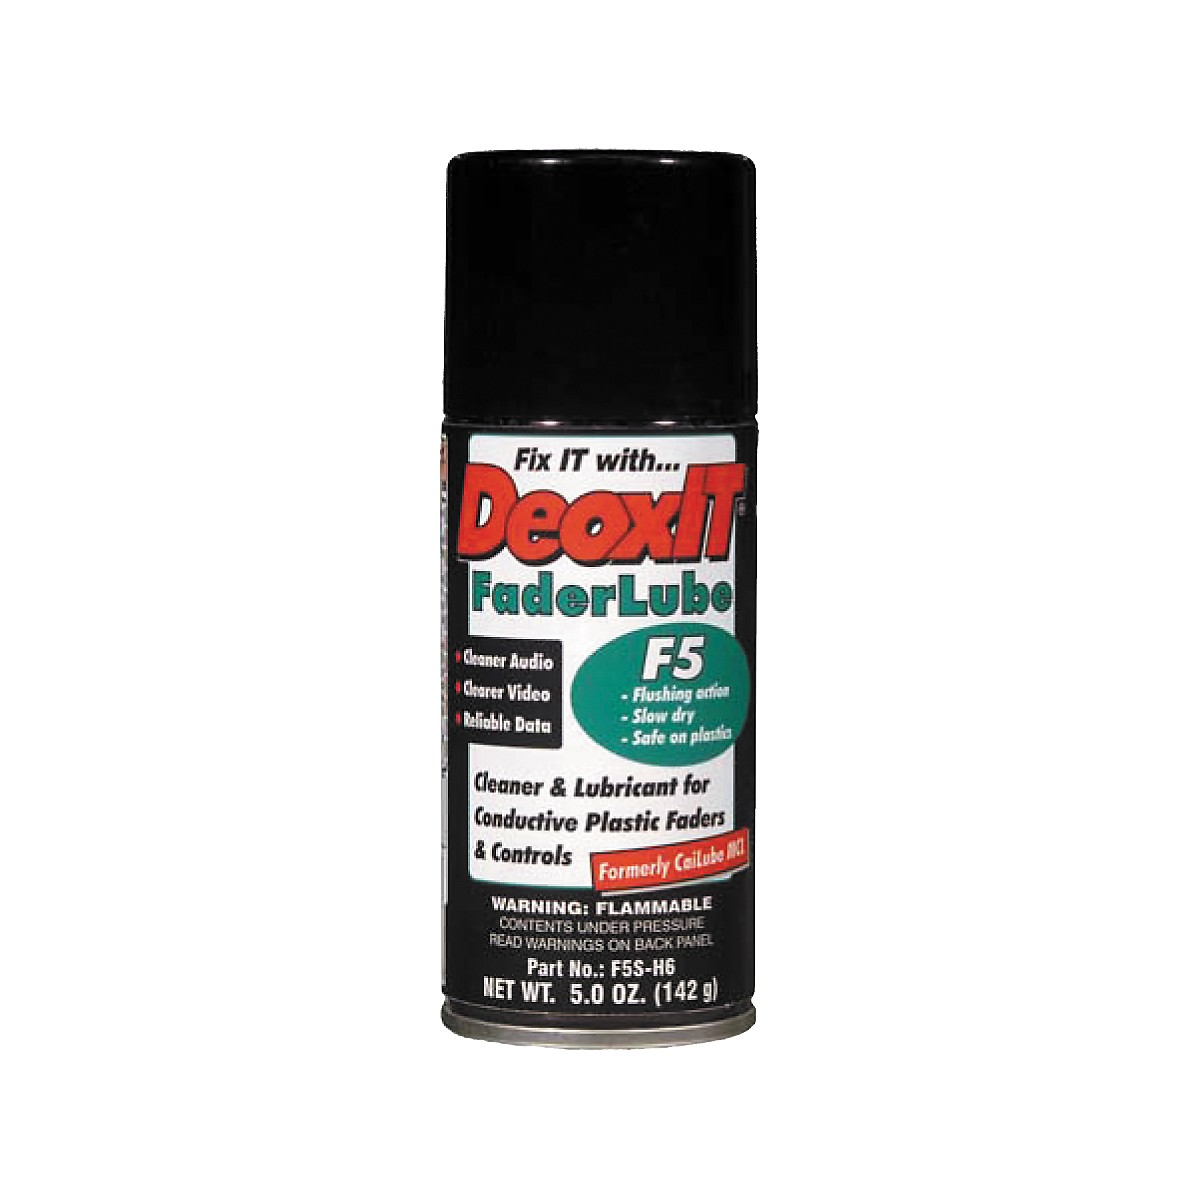 CAIG DeoxIT FaderLube Lubricant 5 oz.